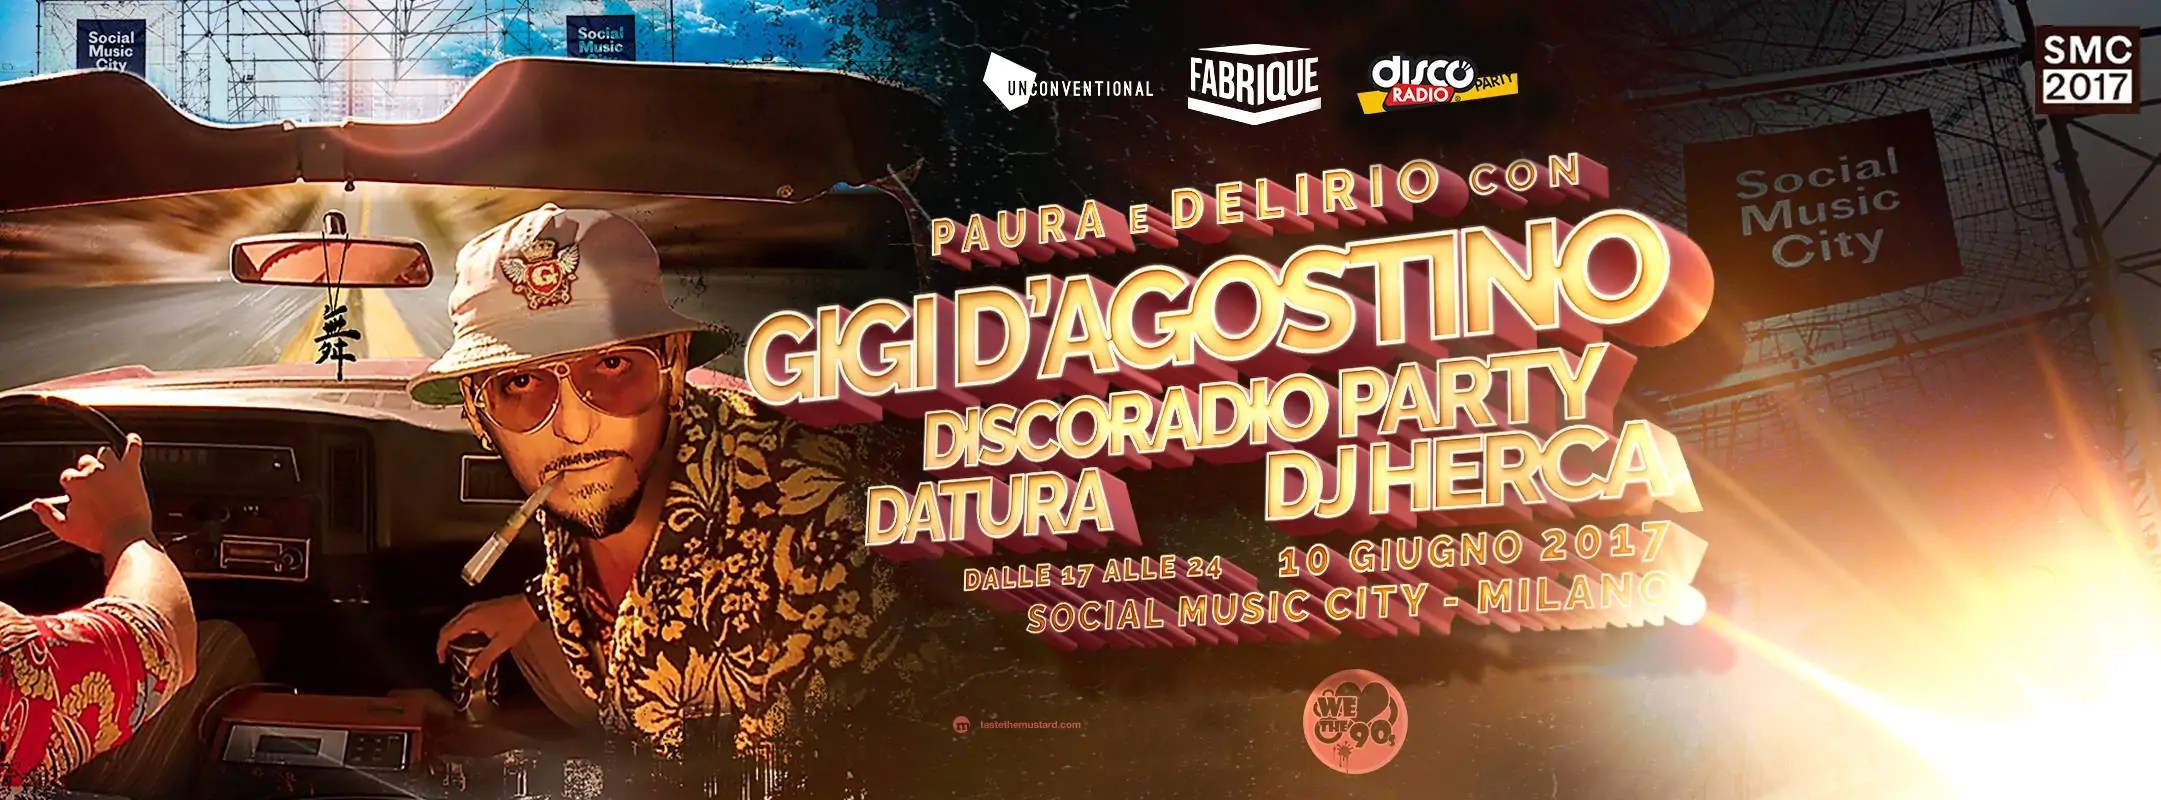 Gigi D'agostino Social Music City 10 06 207